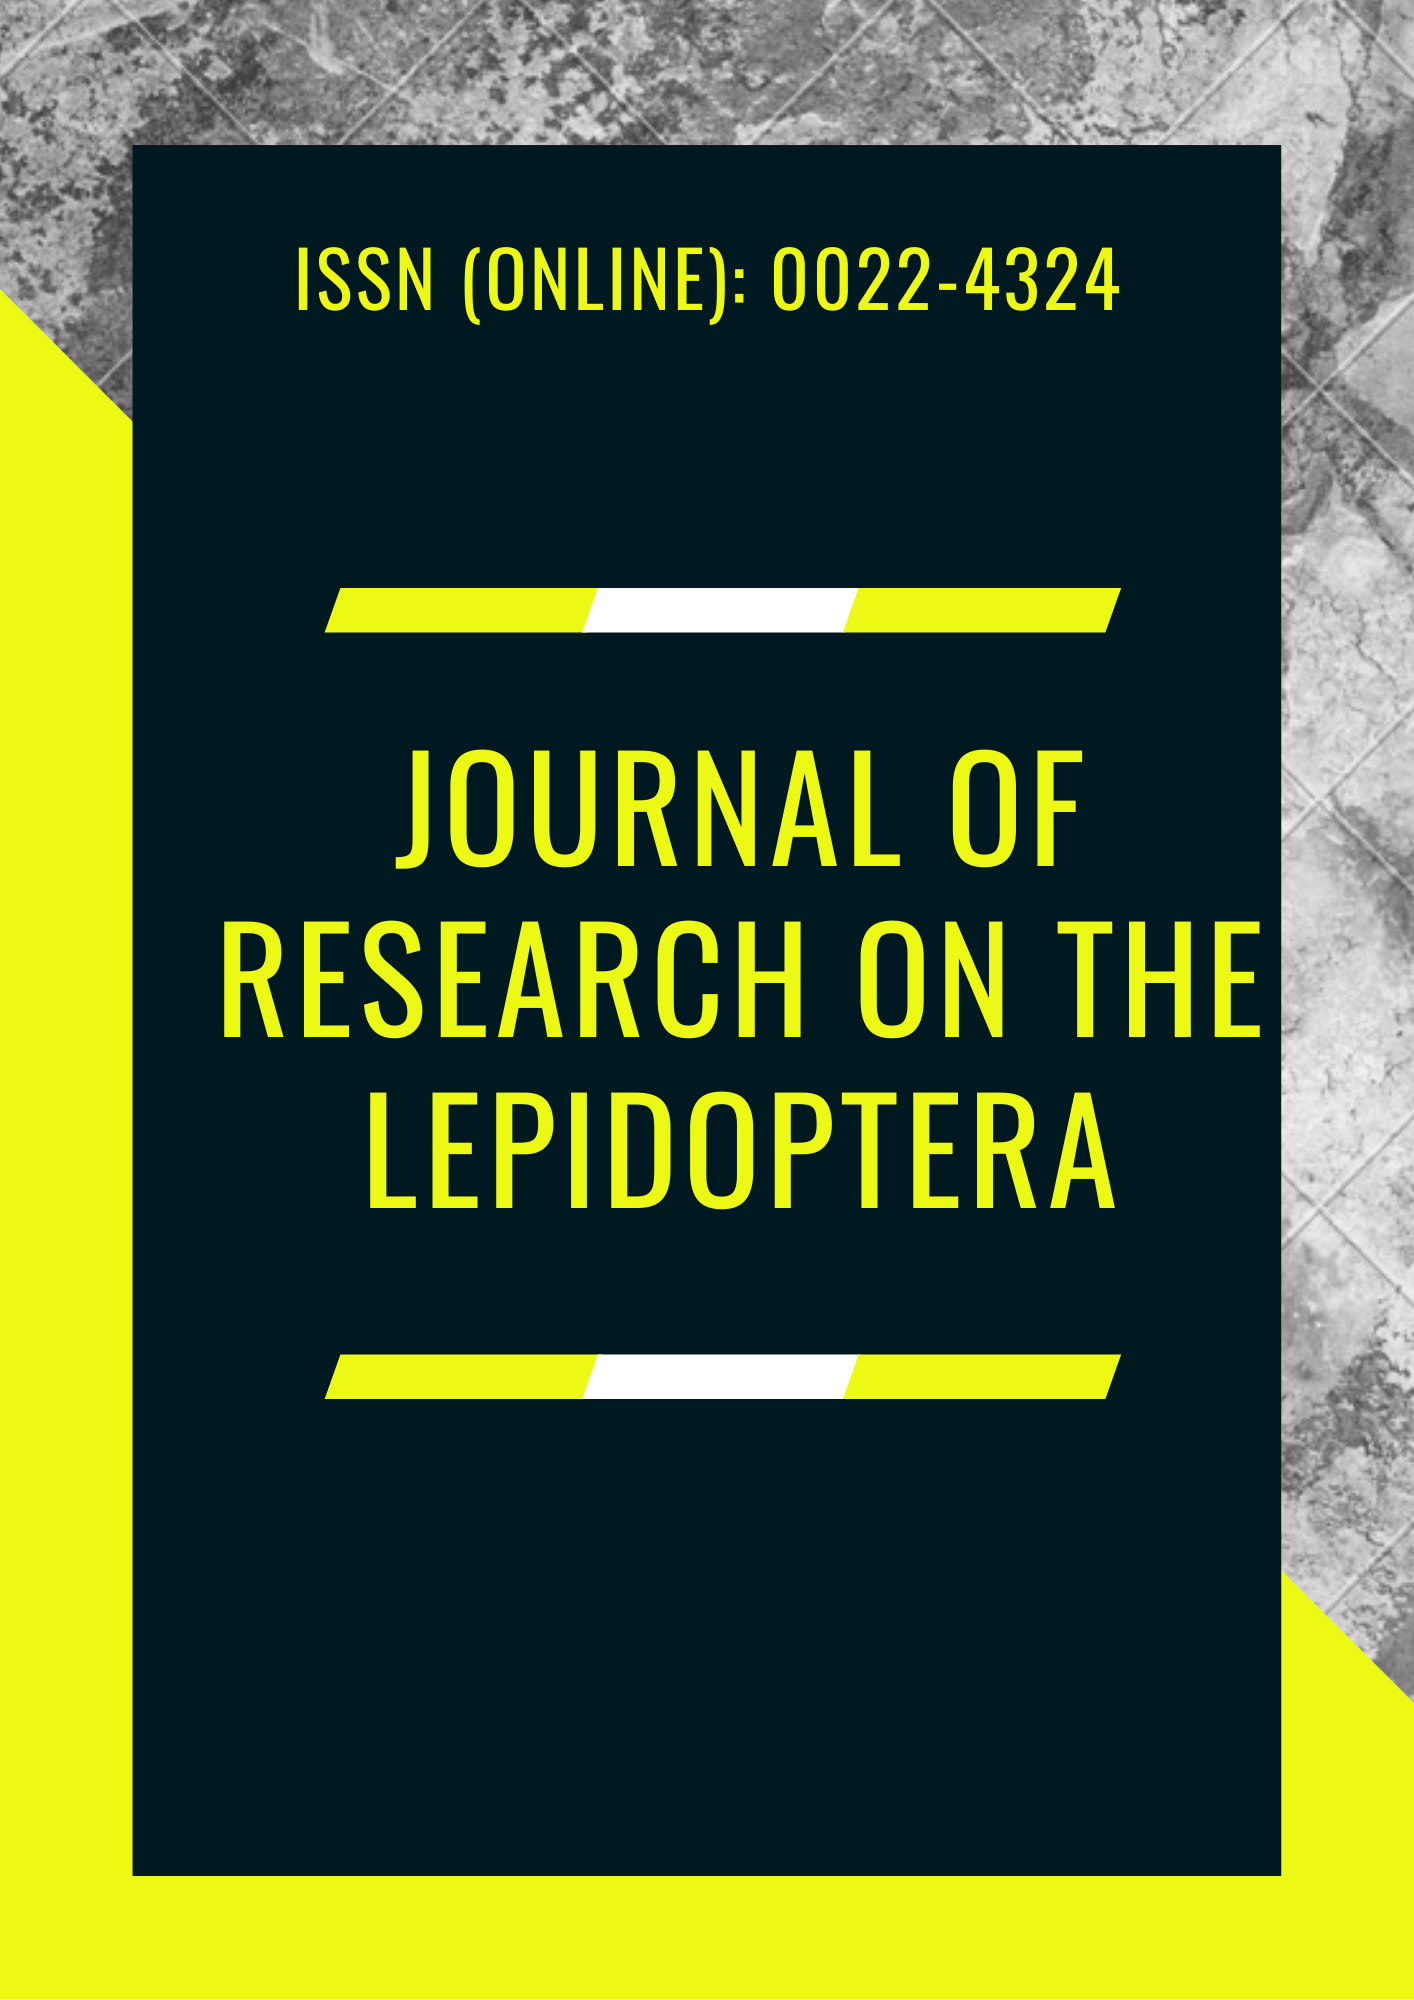 Journal of Research on the Lepidoptera